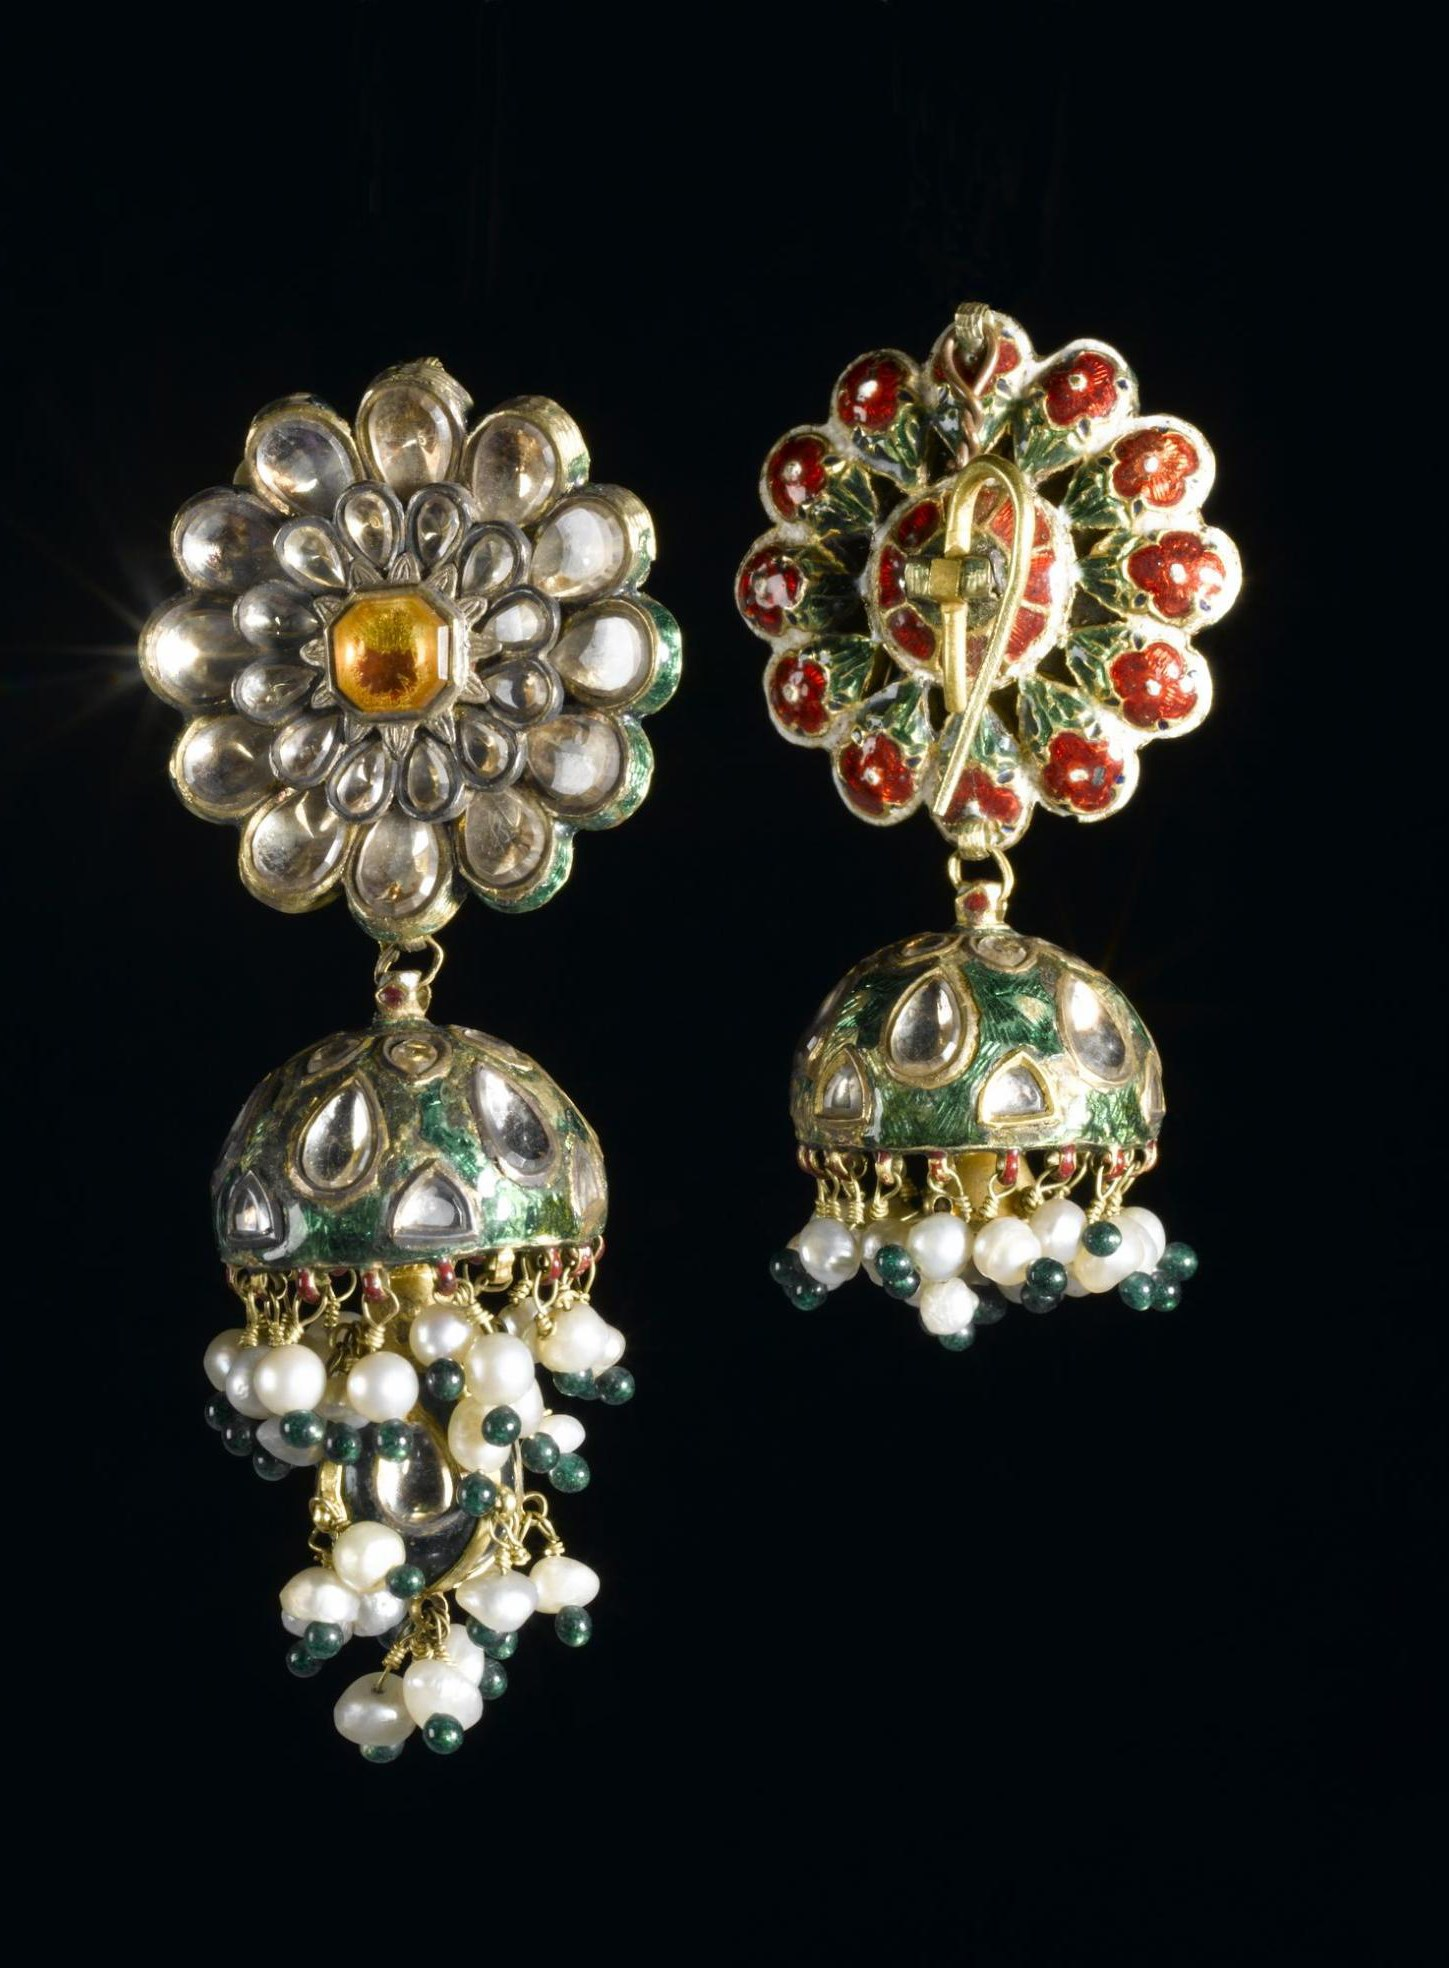 Ear ornaments: Gold, rock crystal, enamel, pearls, green glass: Northern India, probably Delhi, formerly in the possession of Maharaja Duleep Singh.